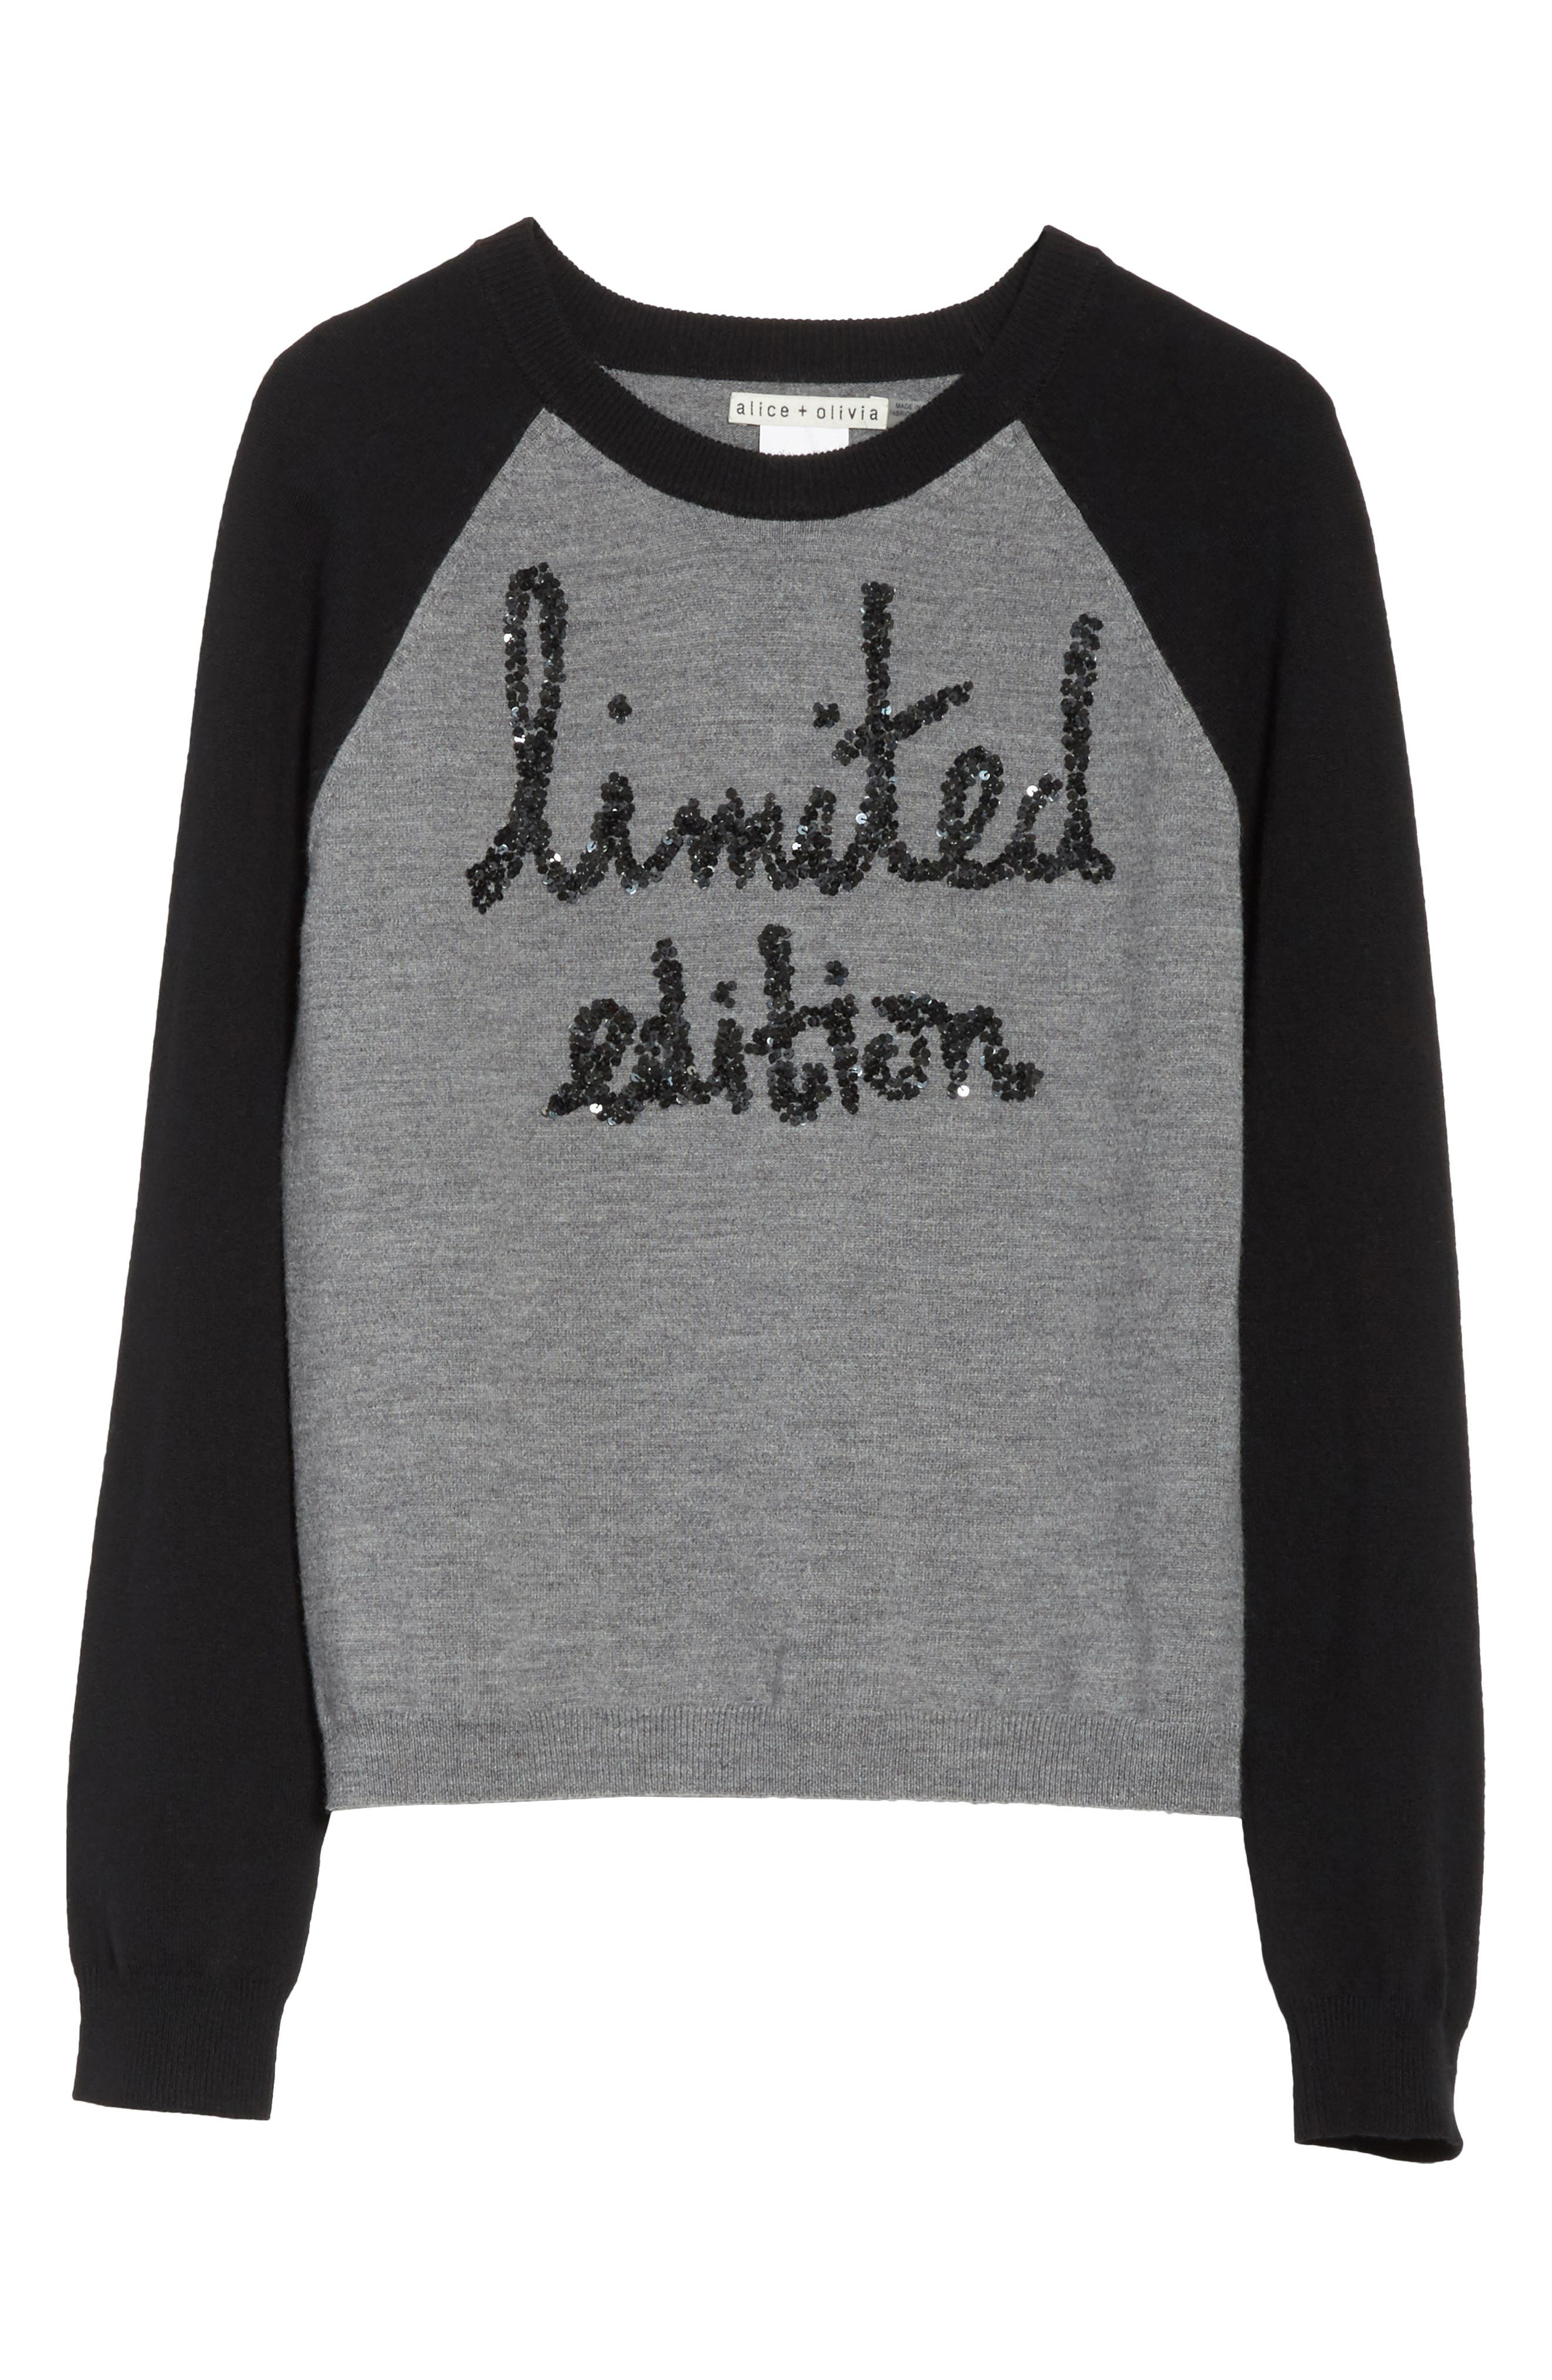 Gretta Limited Edition Pullover,                             Alternate thumbnail 6, color,                             007